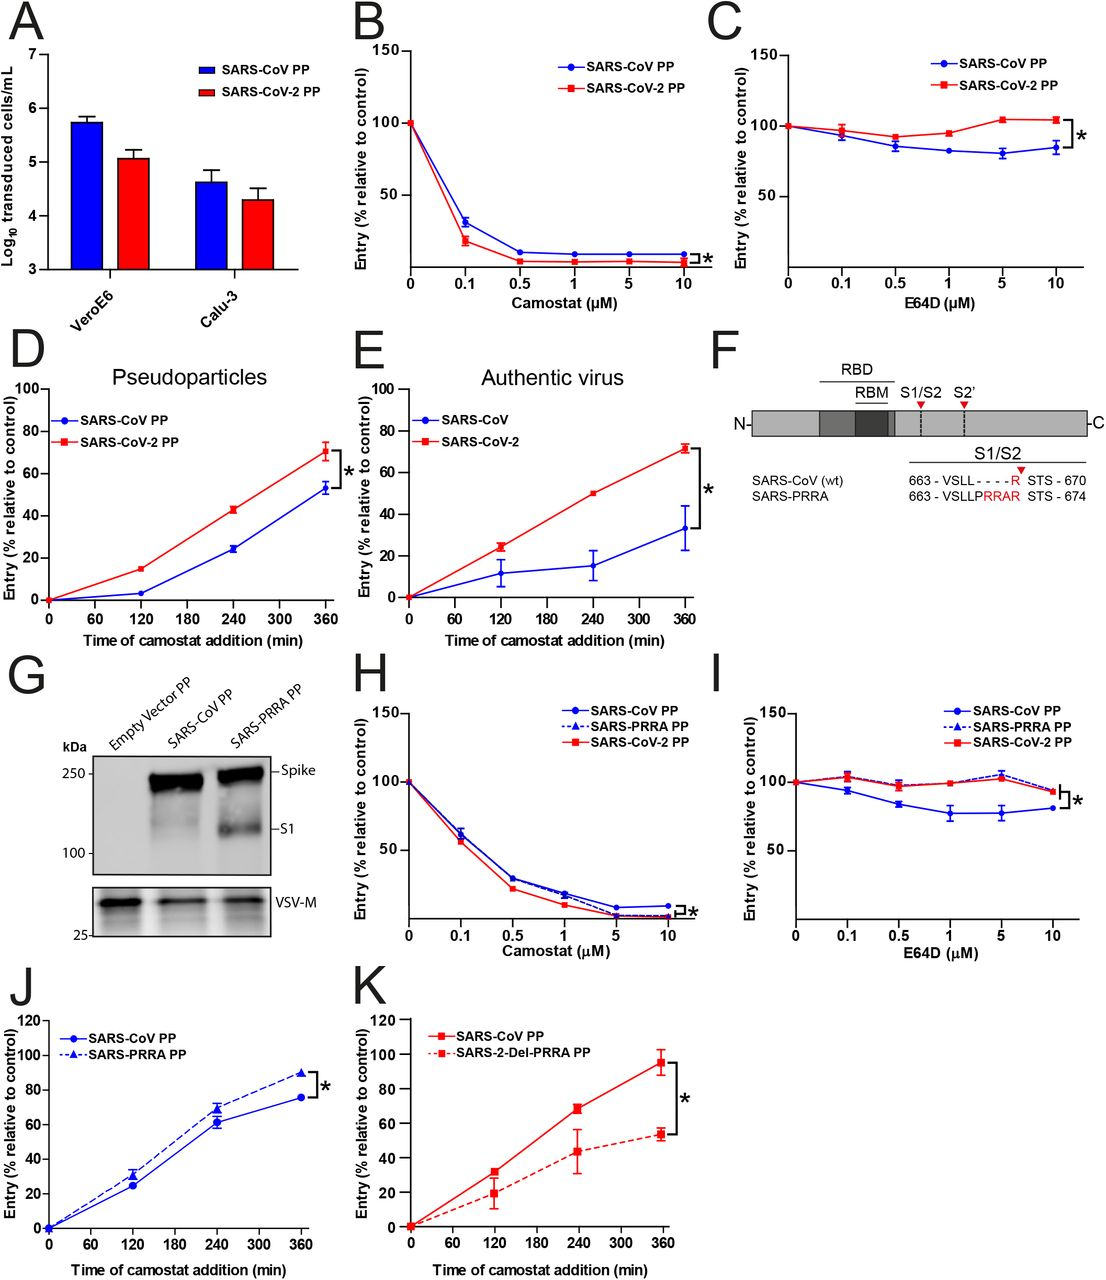 SARS-CoV-2 enters faster on Calu-3 cells than SARS-CoV and entry speed is increased by the multibasic cleavage site. ( A ) SARS-CoV PP and SARS-CoV-2 PP infectivity on VeroE6 and Calu-3 cells. ( B and C ) SARS-CoV PP and SARS-CoV-2 PP entry route on Calu-3 cells. Cells were pretreated with a concentration range of camostat ( B ) or E64D ( C ) to inhibit serine proteases and cathepsins, respectively. T-test was performed for statistical analysis at the highest concentration. * P